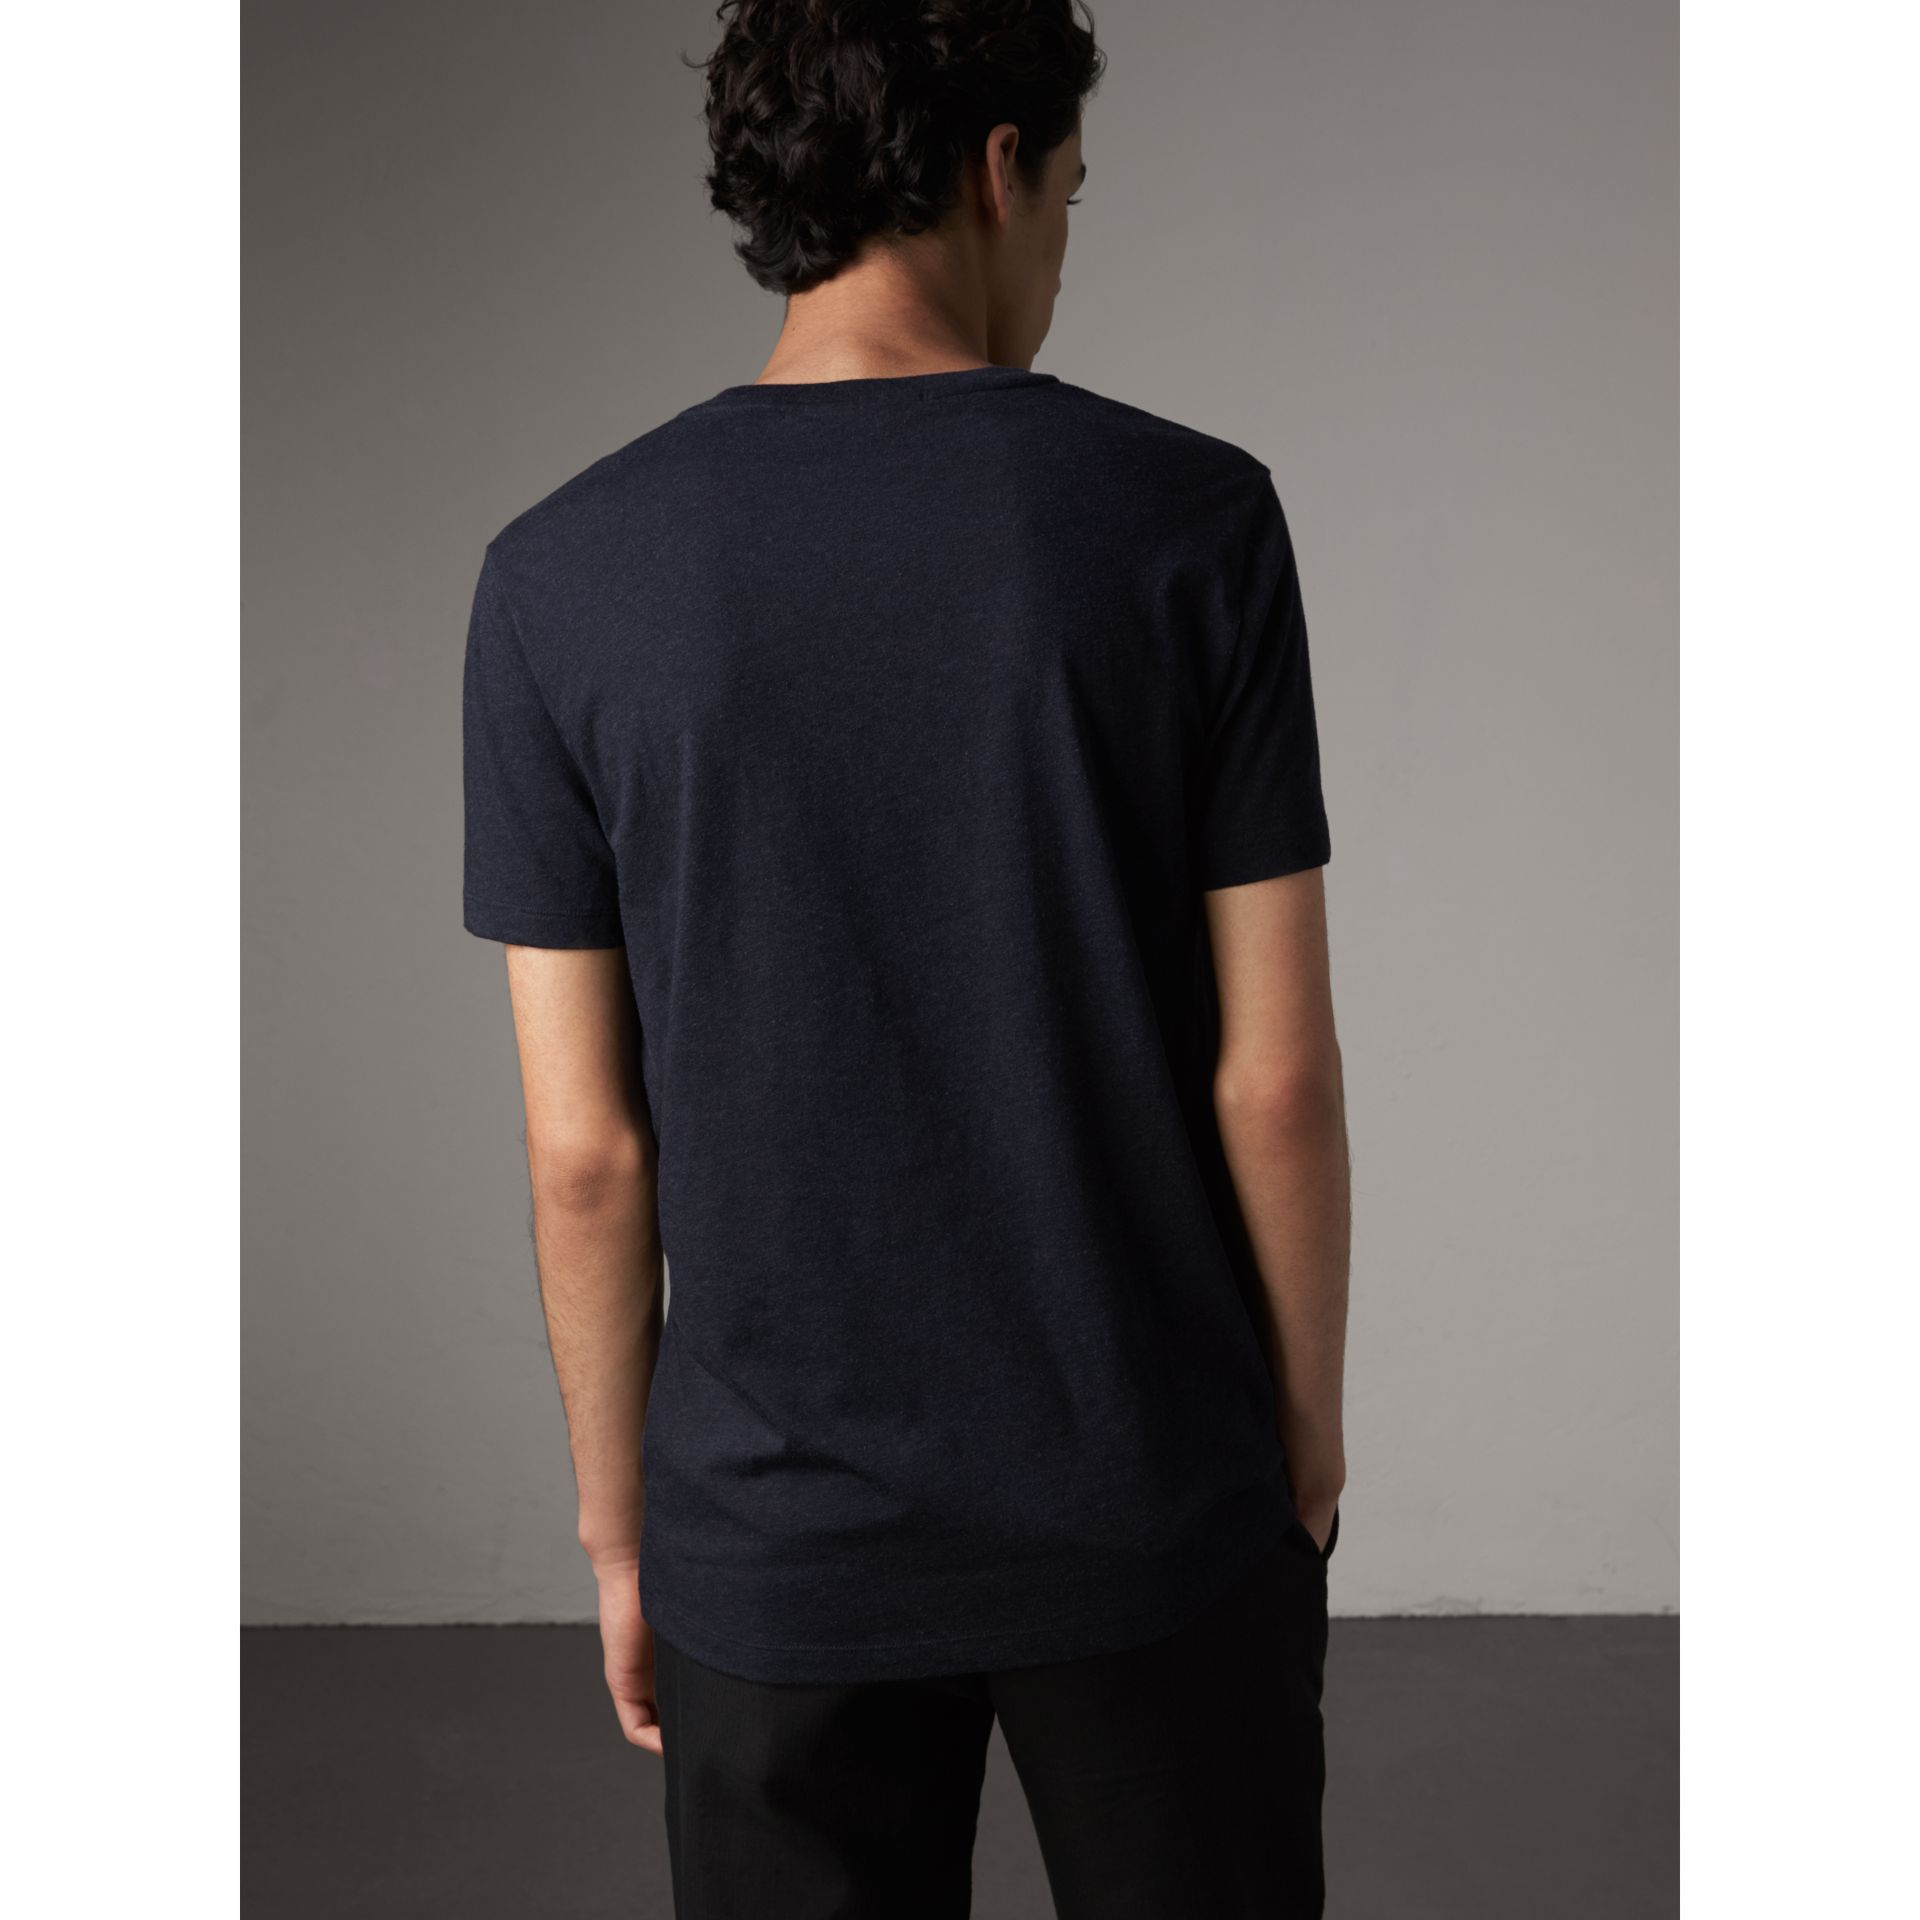 Devoré Cotton Jersey T-shirt in Navy Melange - Men | Burberry Singapore - gallery image 2